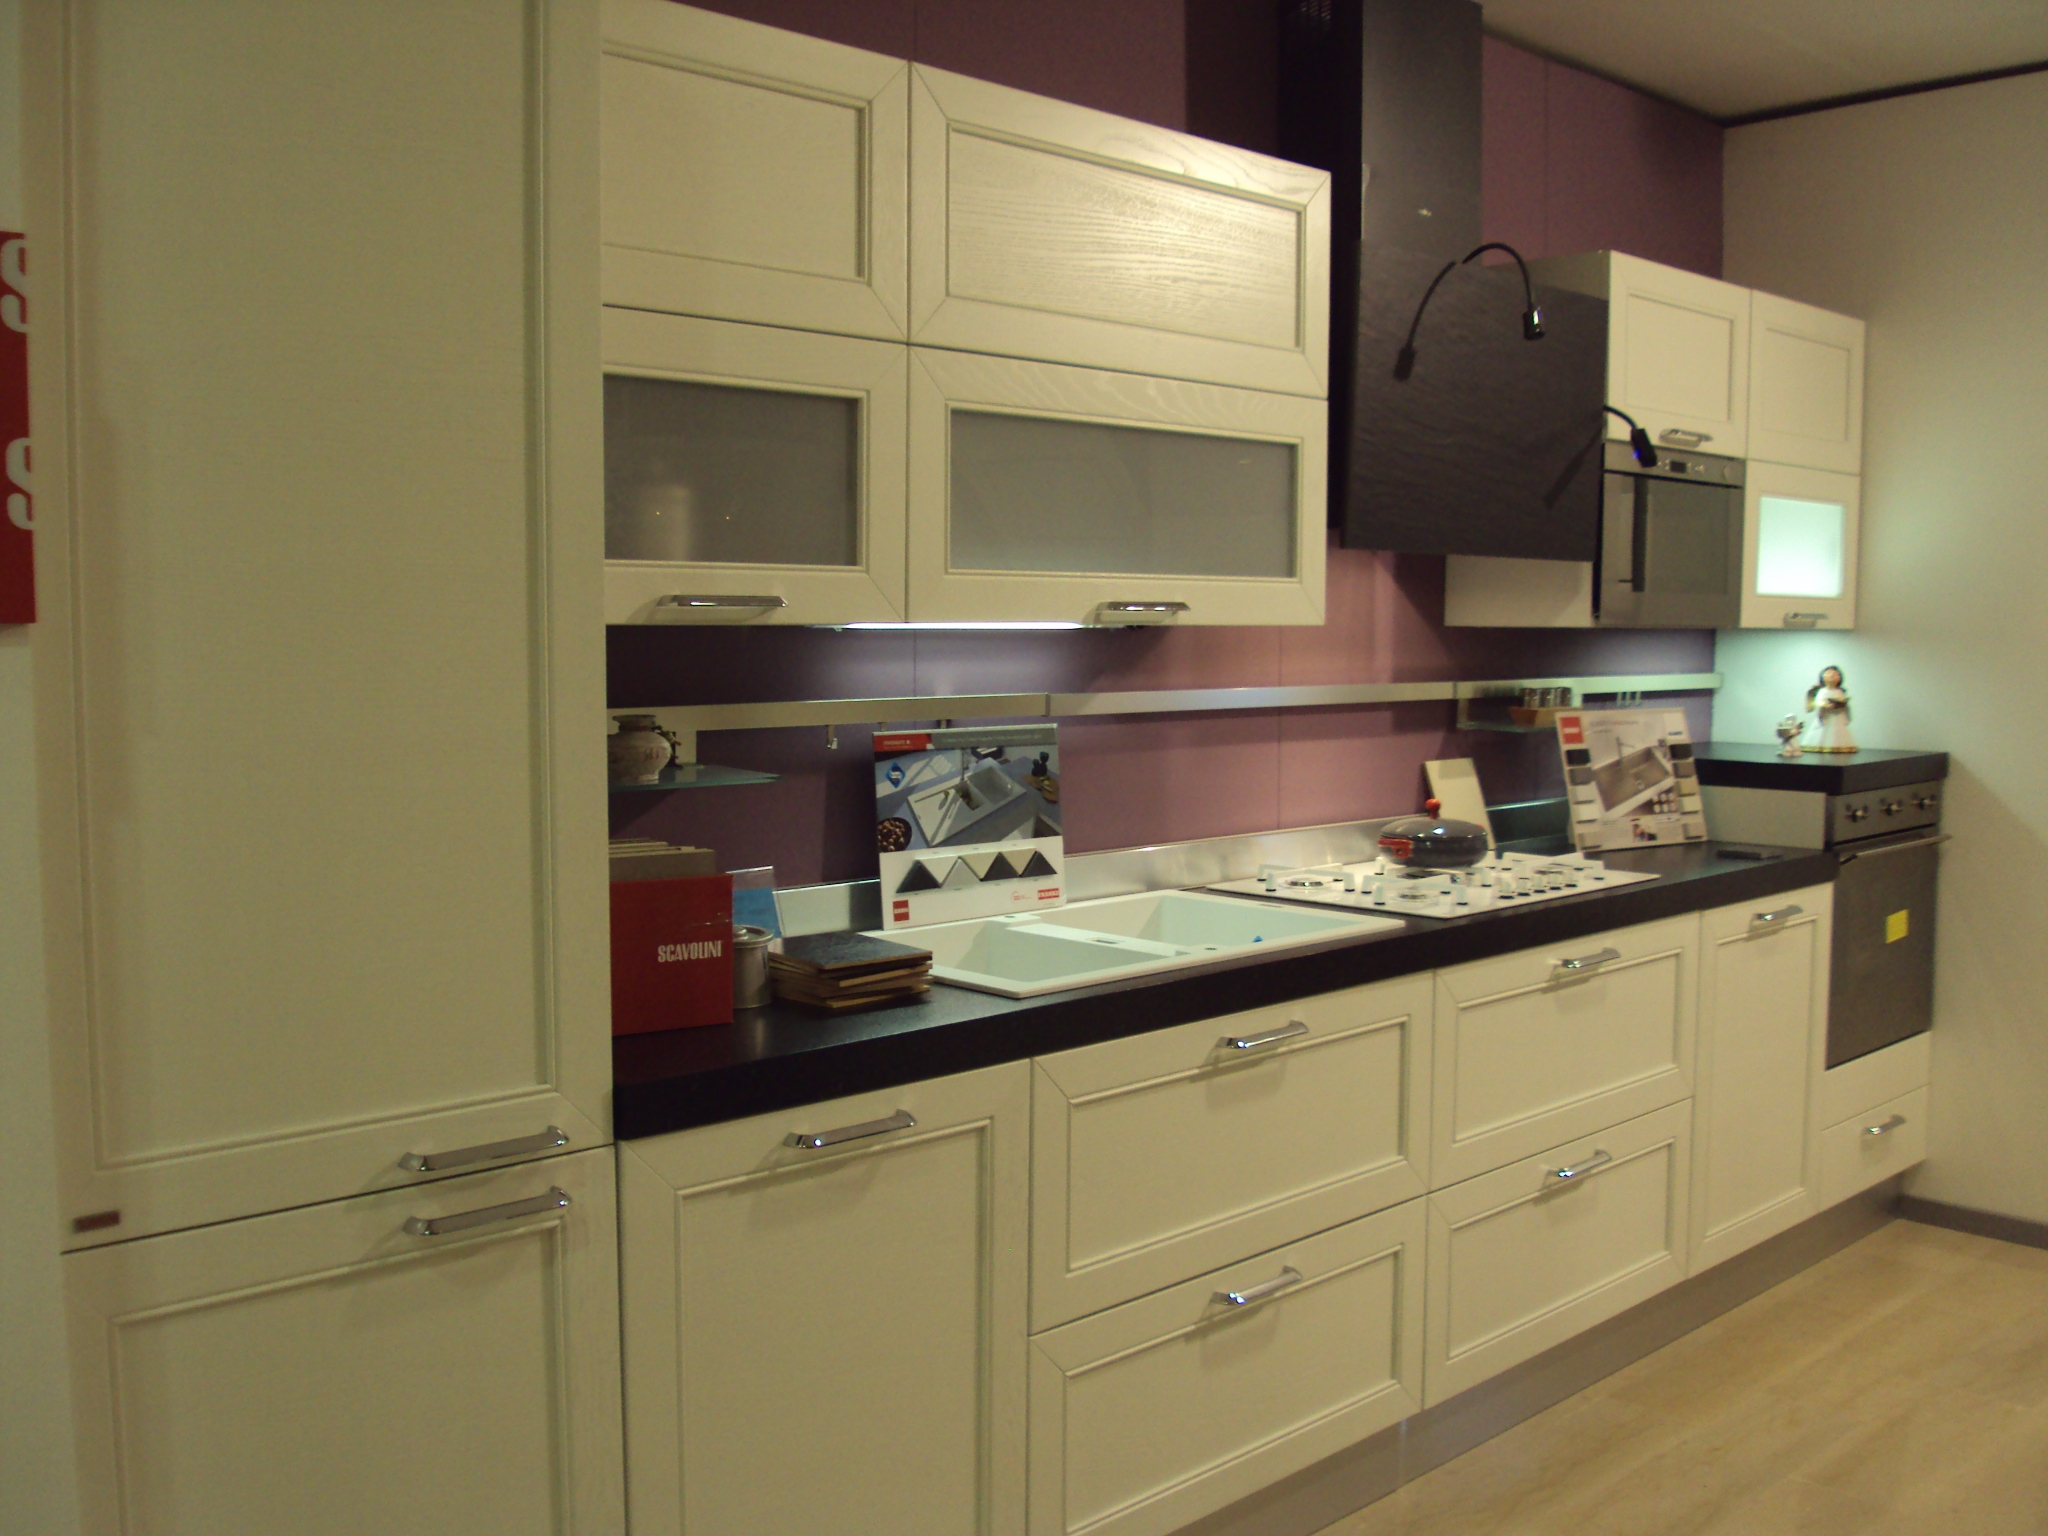 CUCINA SCAVOLINI OUTLET 14809